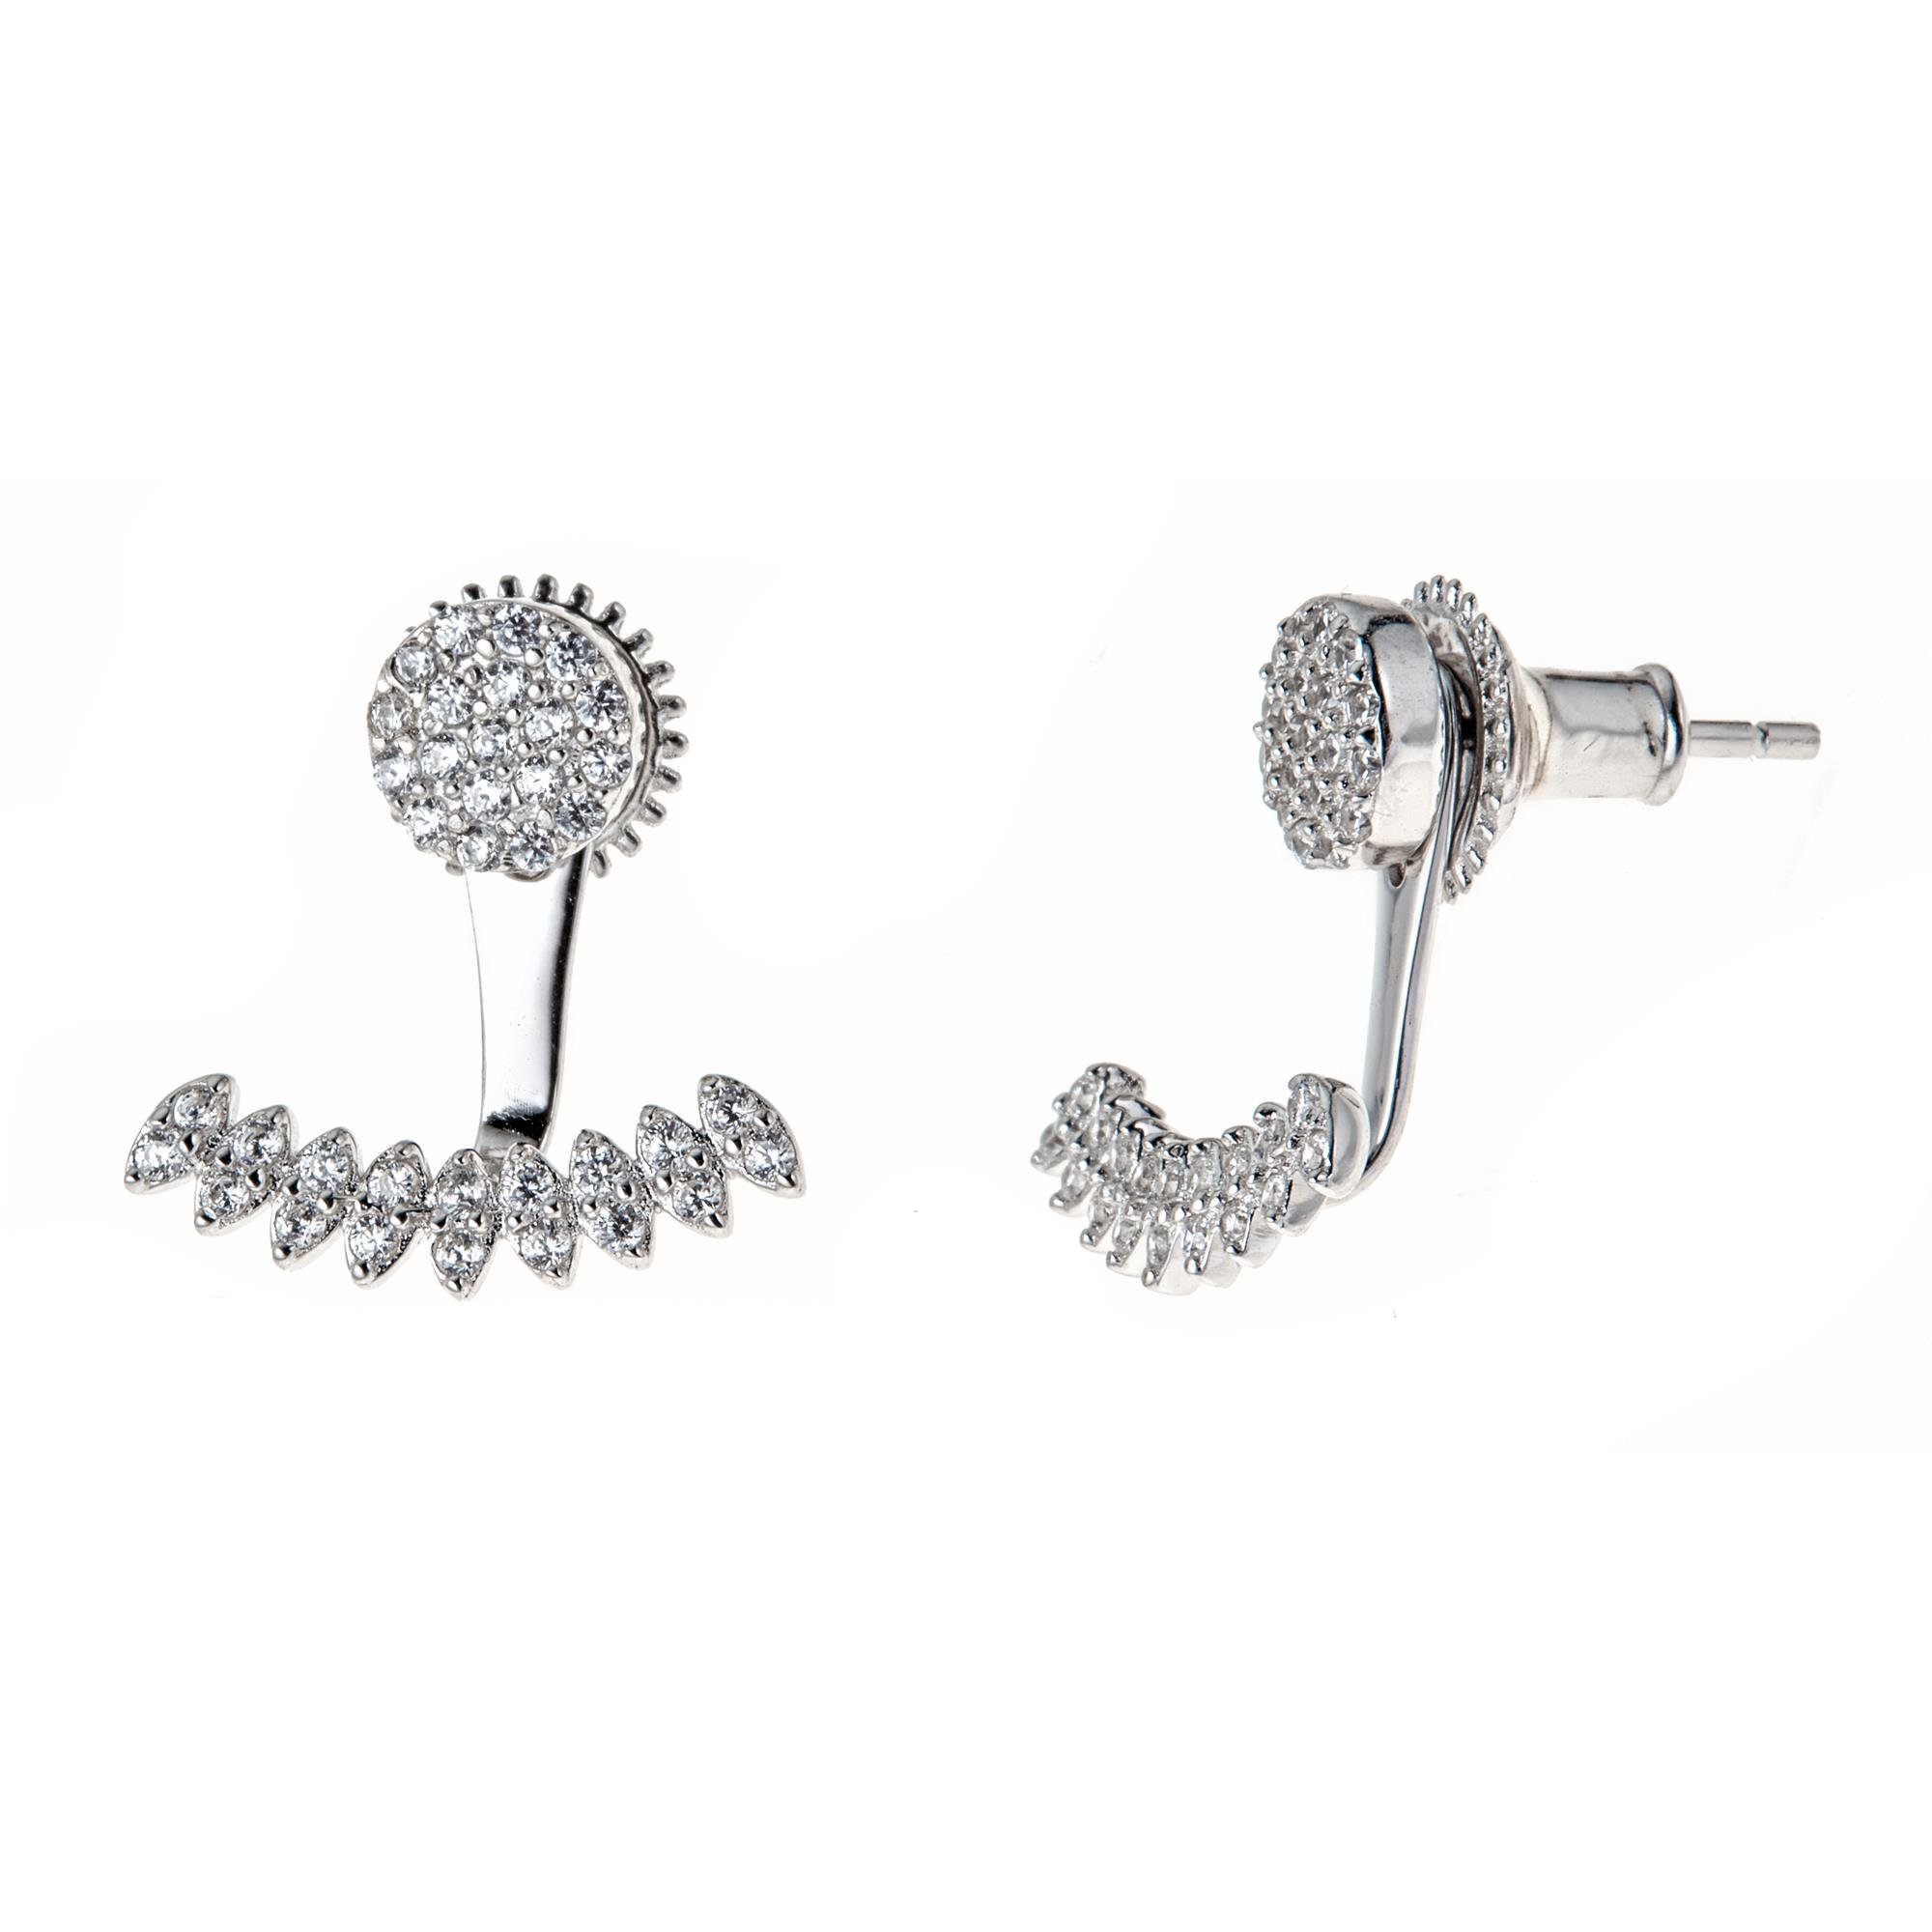 Platinum Plated 925 Sterling Silver Round Cubic Zirconia Round Disc Stud And Curved Bar Earring Jackets by Joy and Rachel